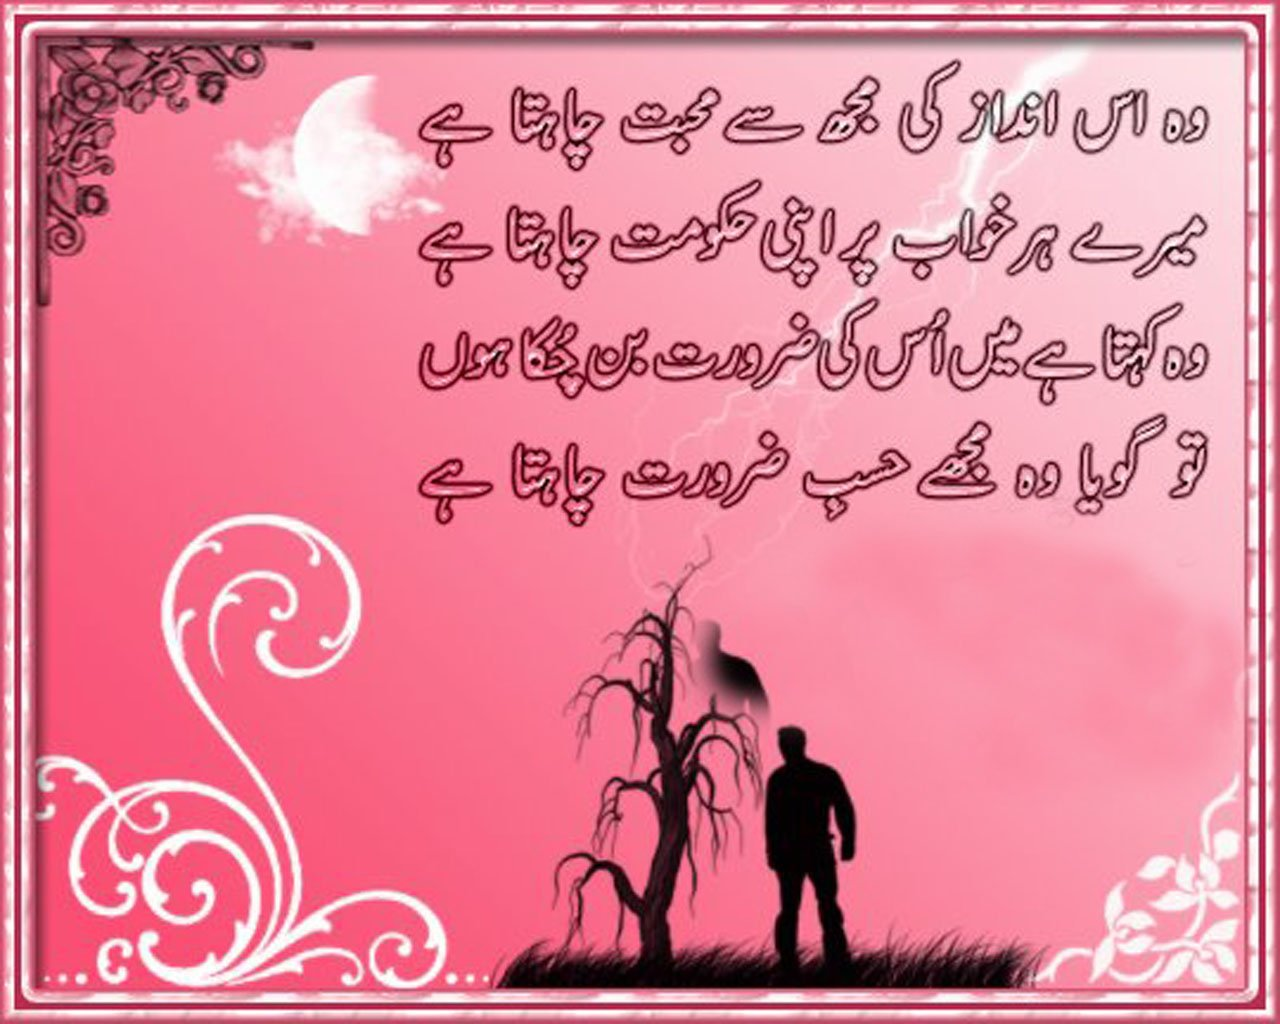 Poems Urdu Poetry Poetry Images English Poetry Romantic Poetry 1280x1024